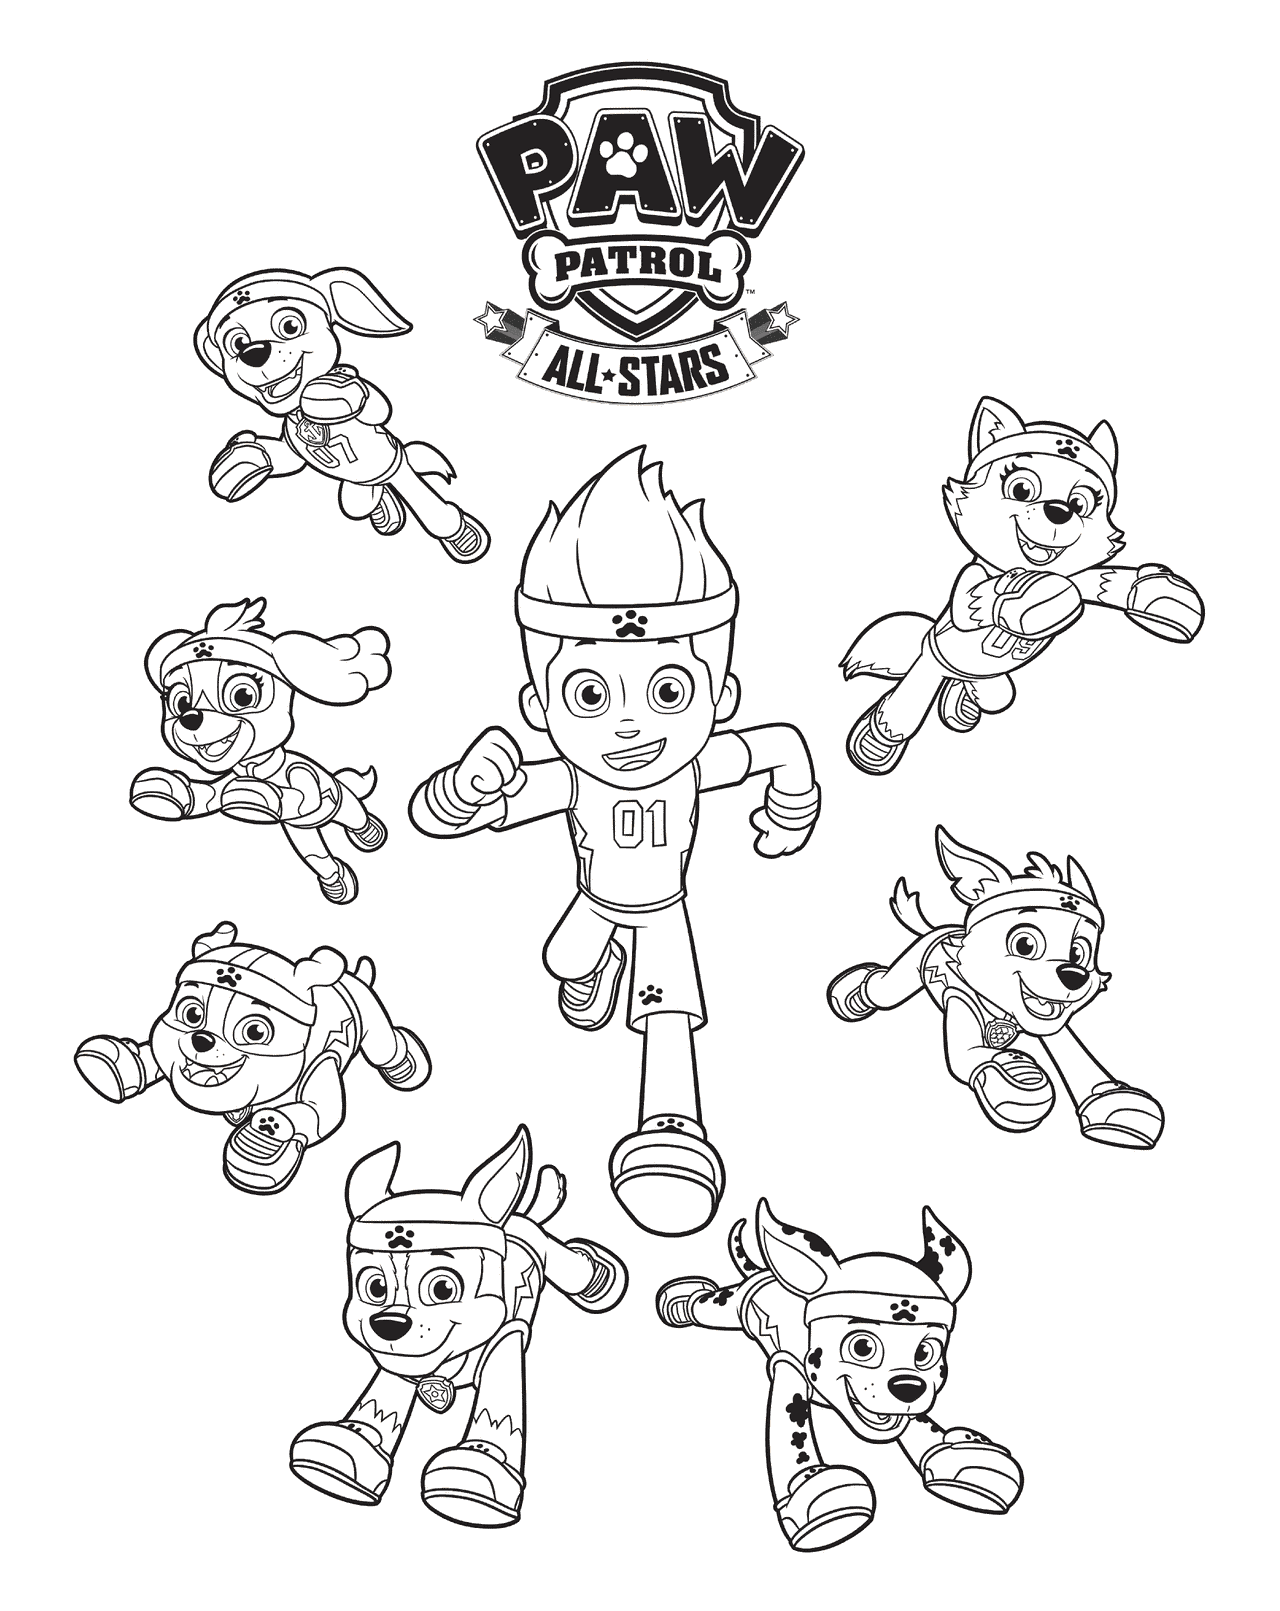 Free Printable Paw Patrol Coloring Pages For Kids